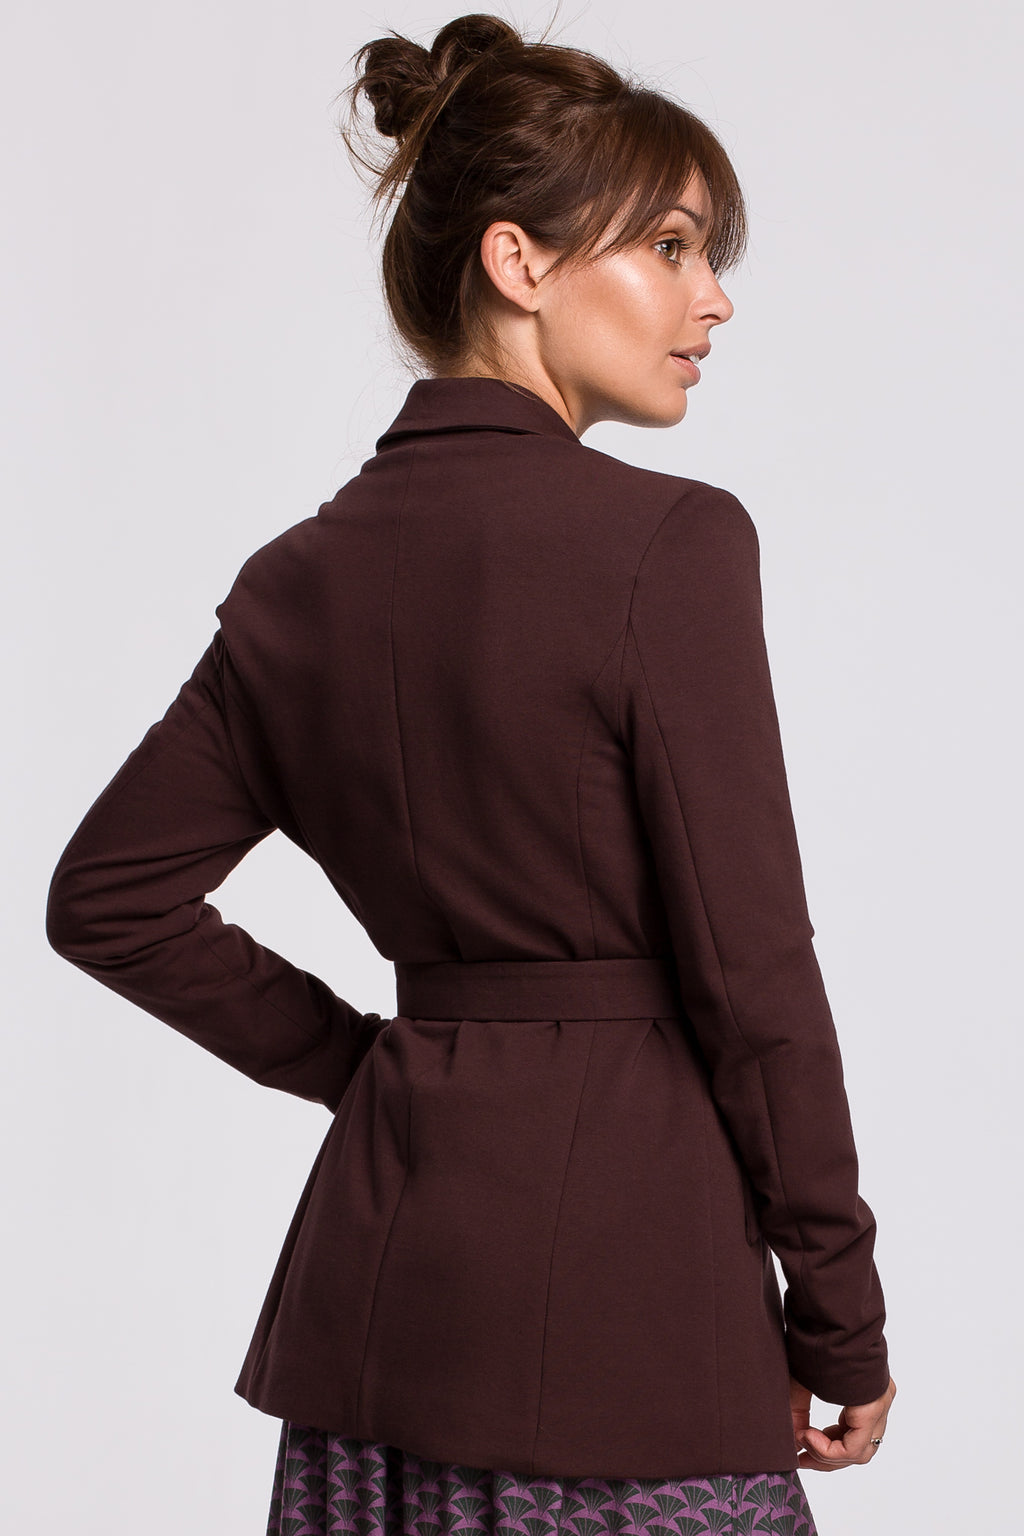 Brown Cotton Blazer With A Buckle Belt - So Chic Boutique